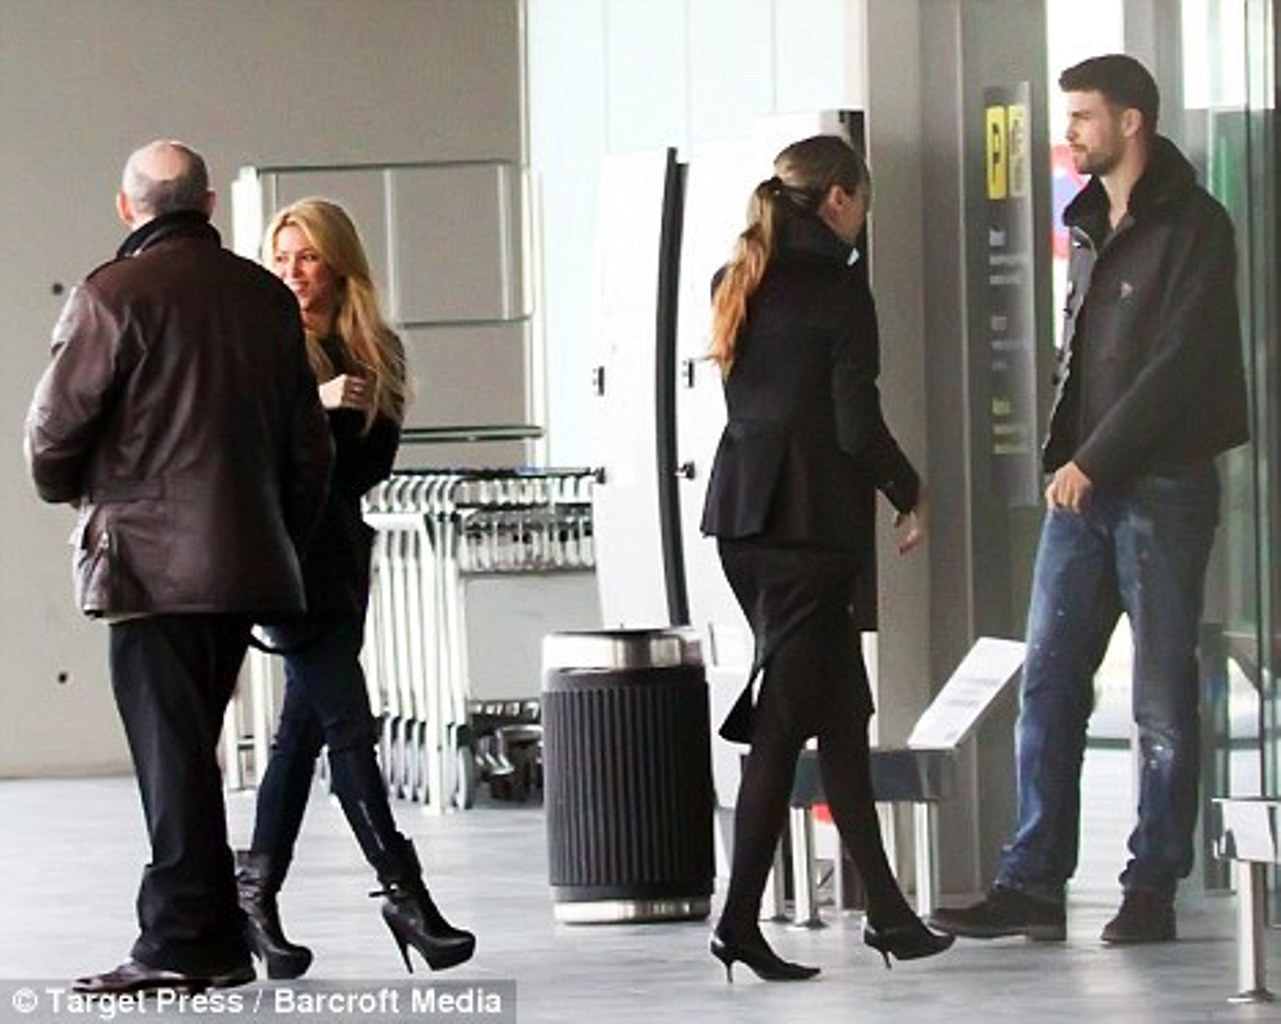 Shakira and Pique. - Page 2 Shakira-Piqu-yesterday-today-tomorrow-and-forever-gerard-pique-19532739-1281-1024